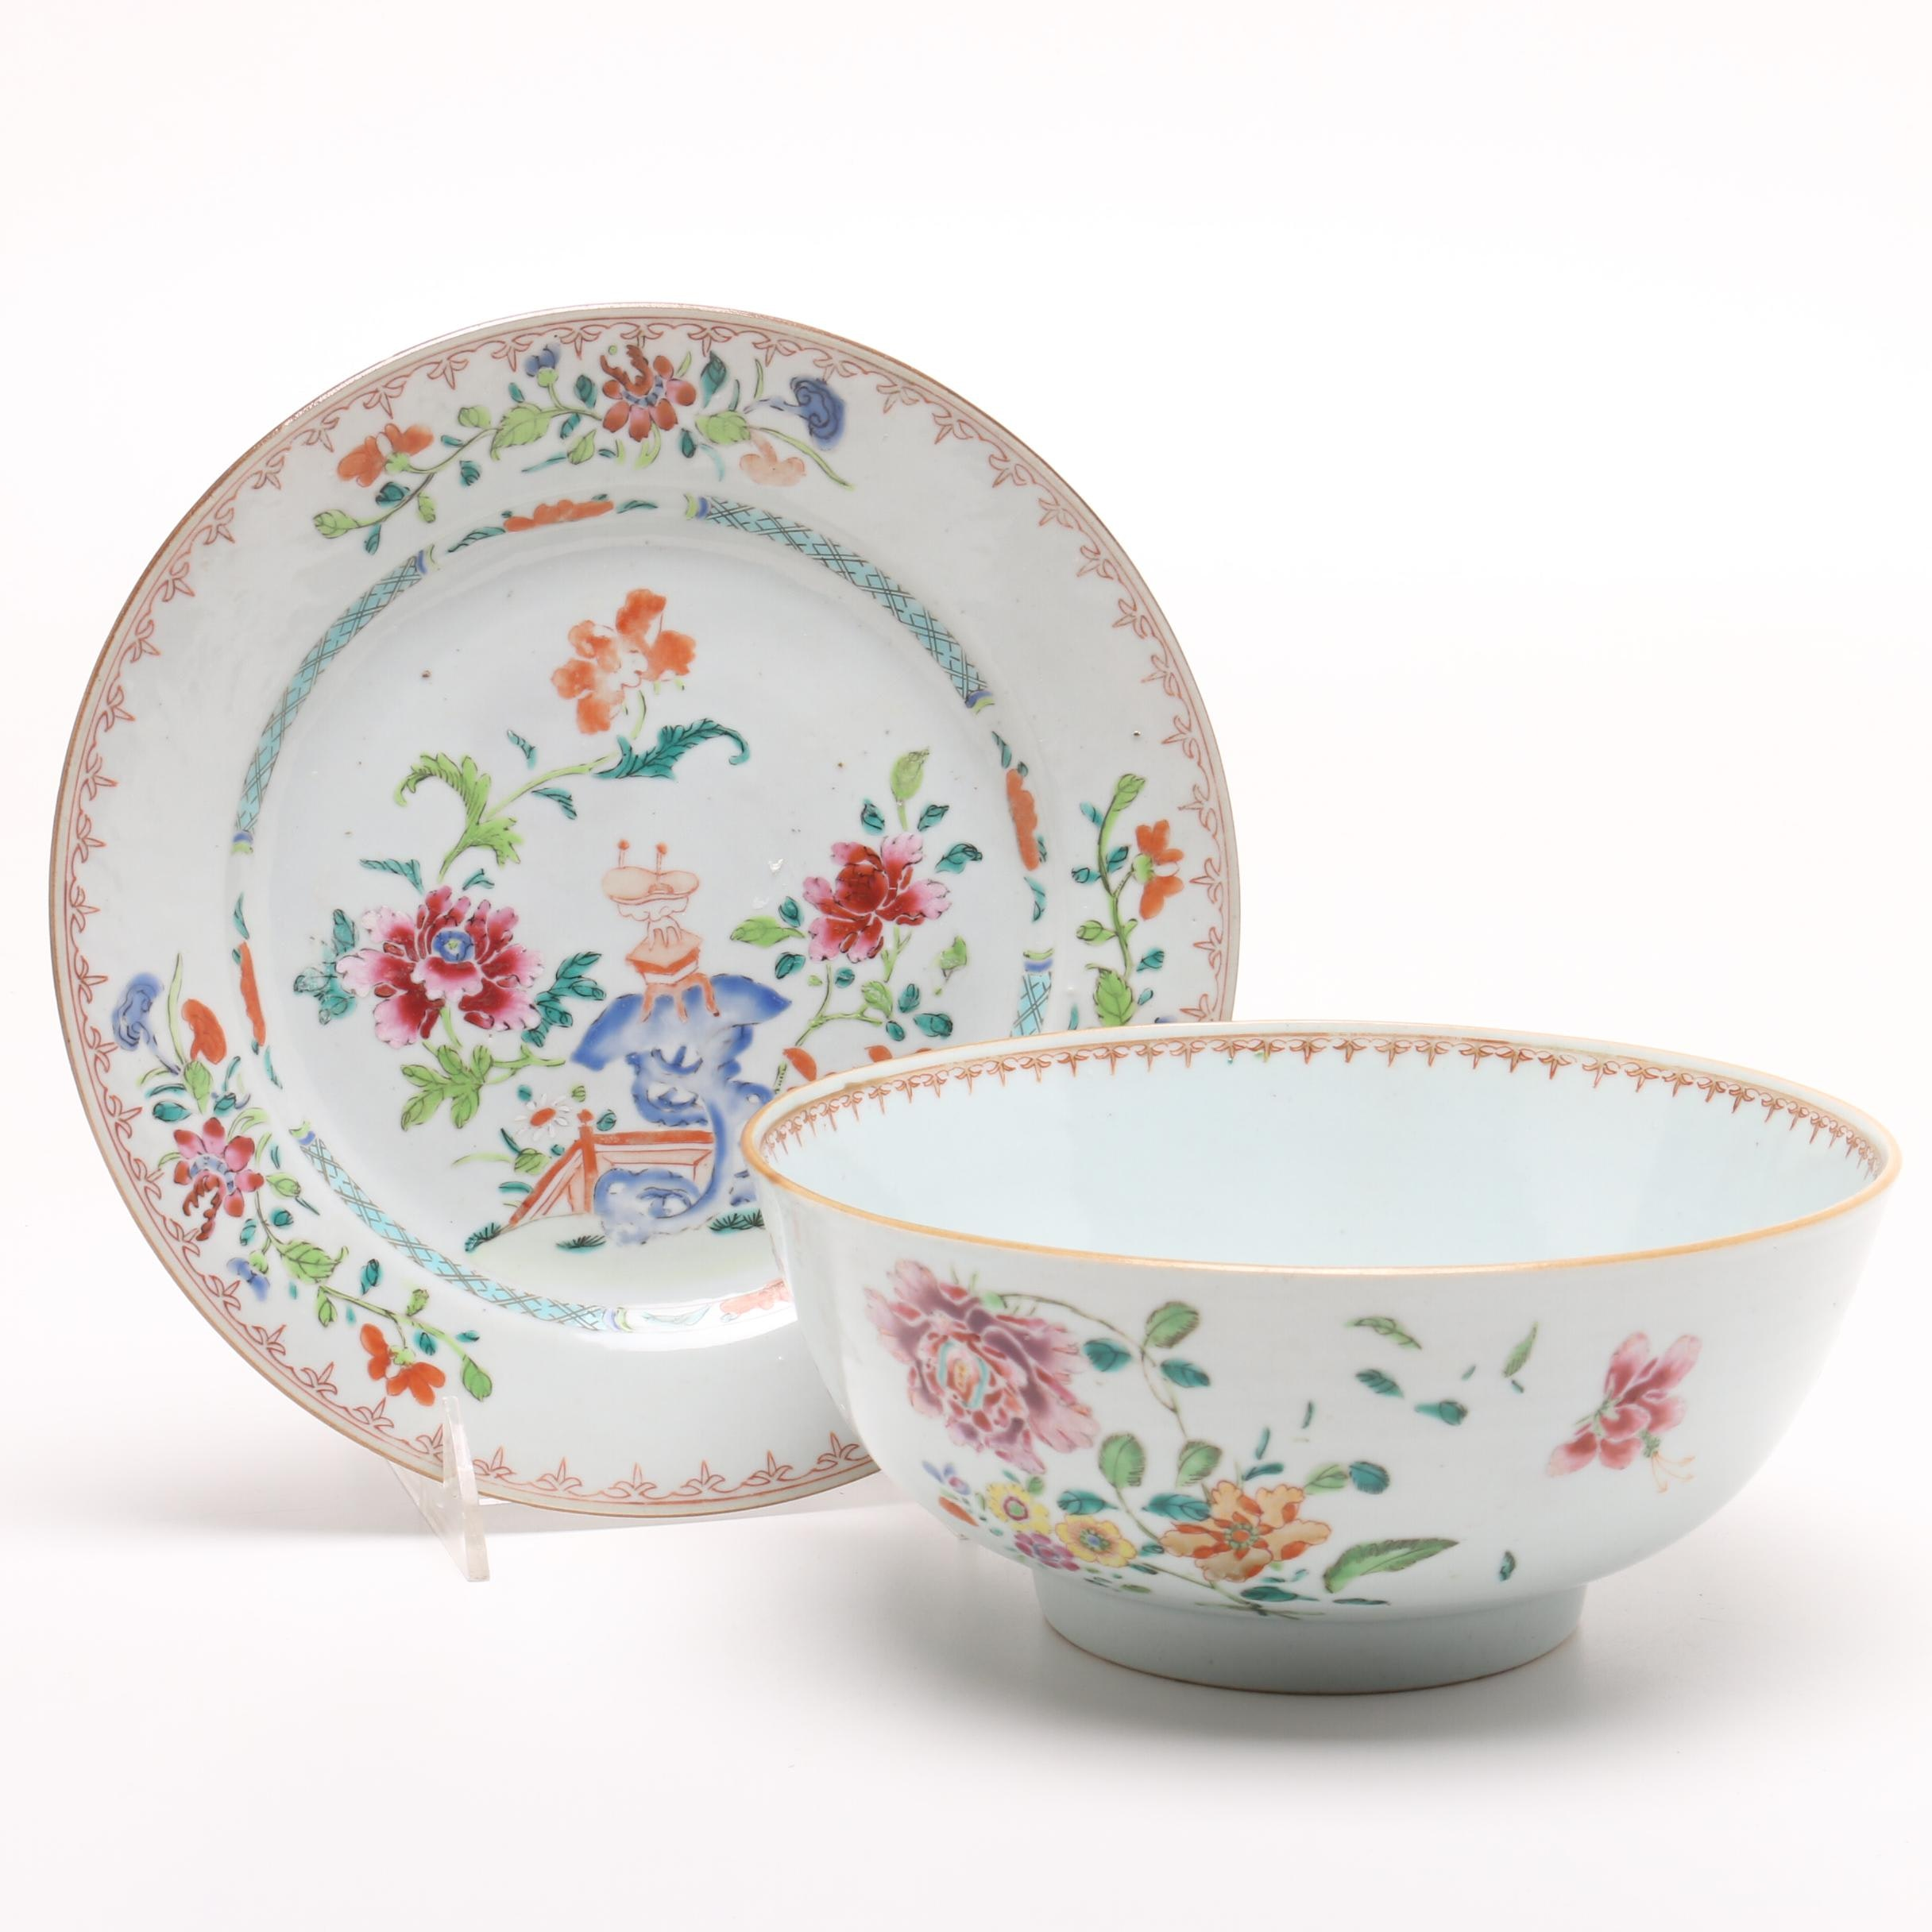 Chinese Export Porcelain Bowl and Plate, 18th Century